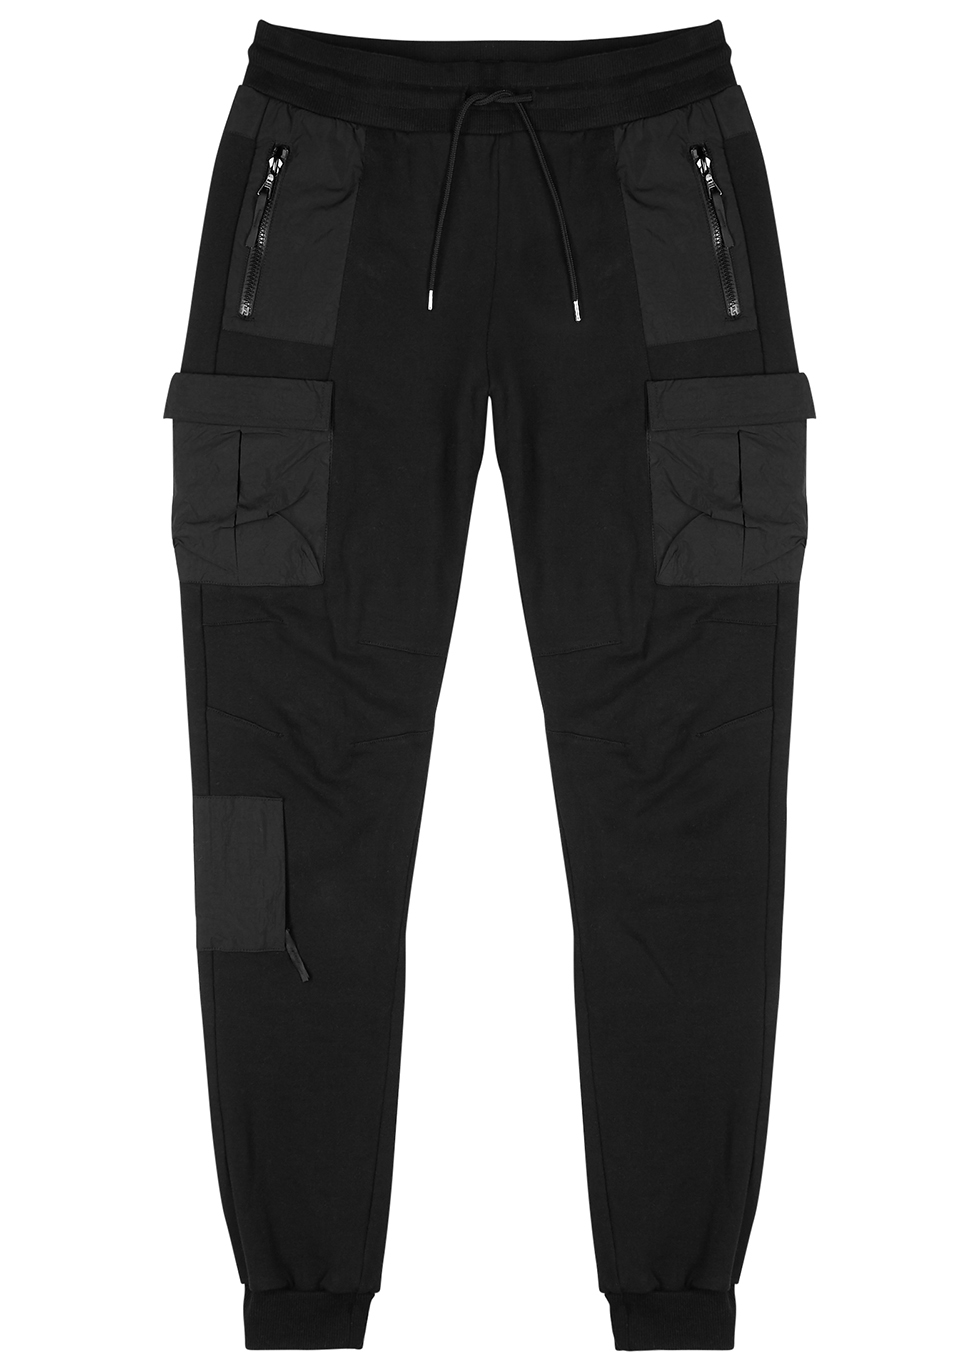 Black cotton jersey sweatpants - John Elliott